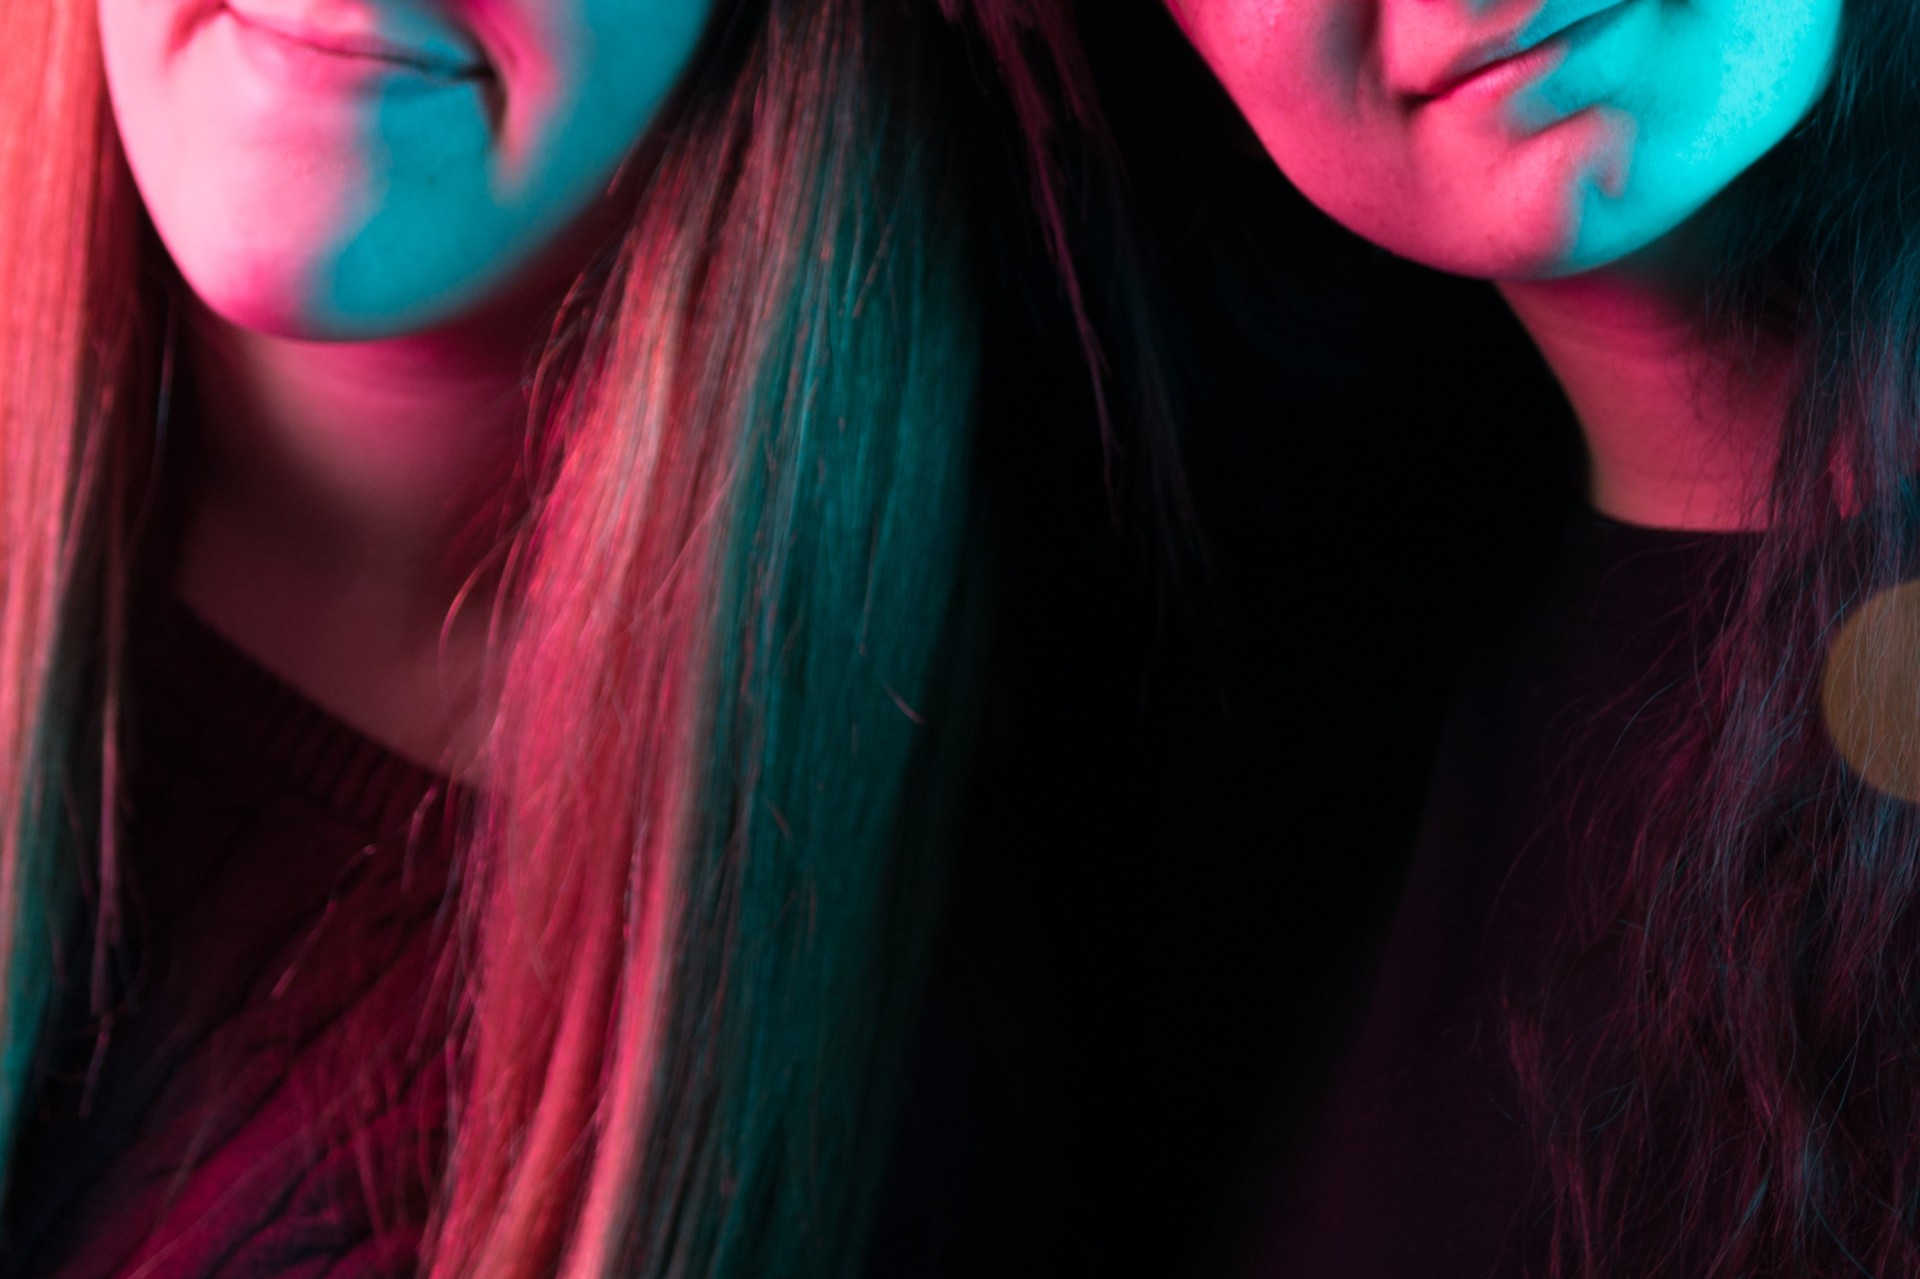 two girls leaning together in pink and blue lighting.